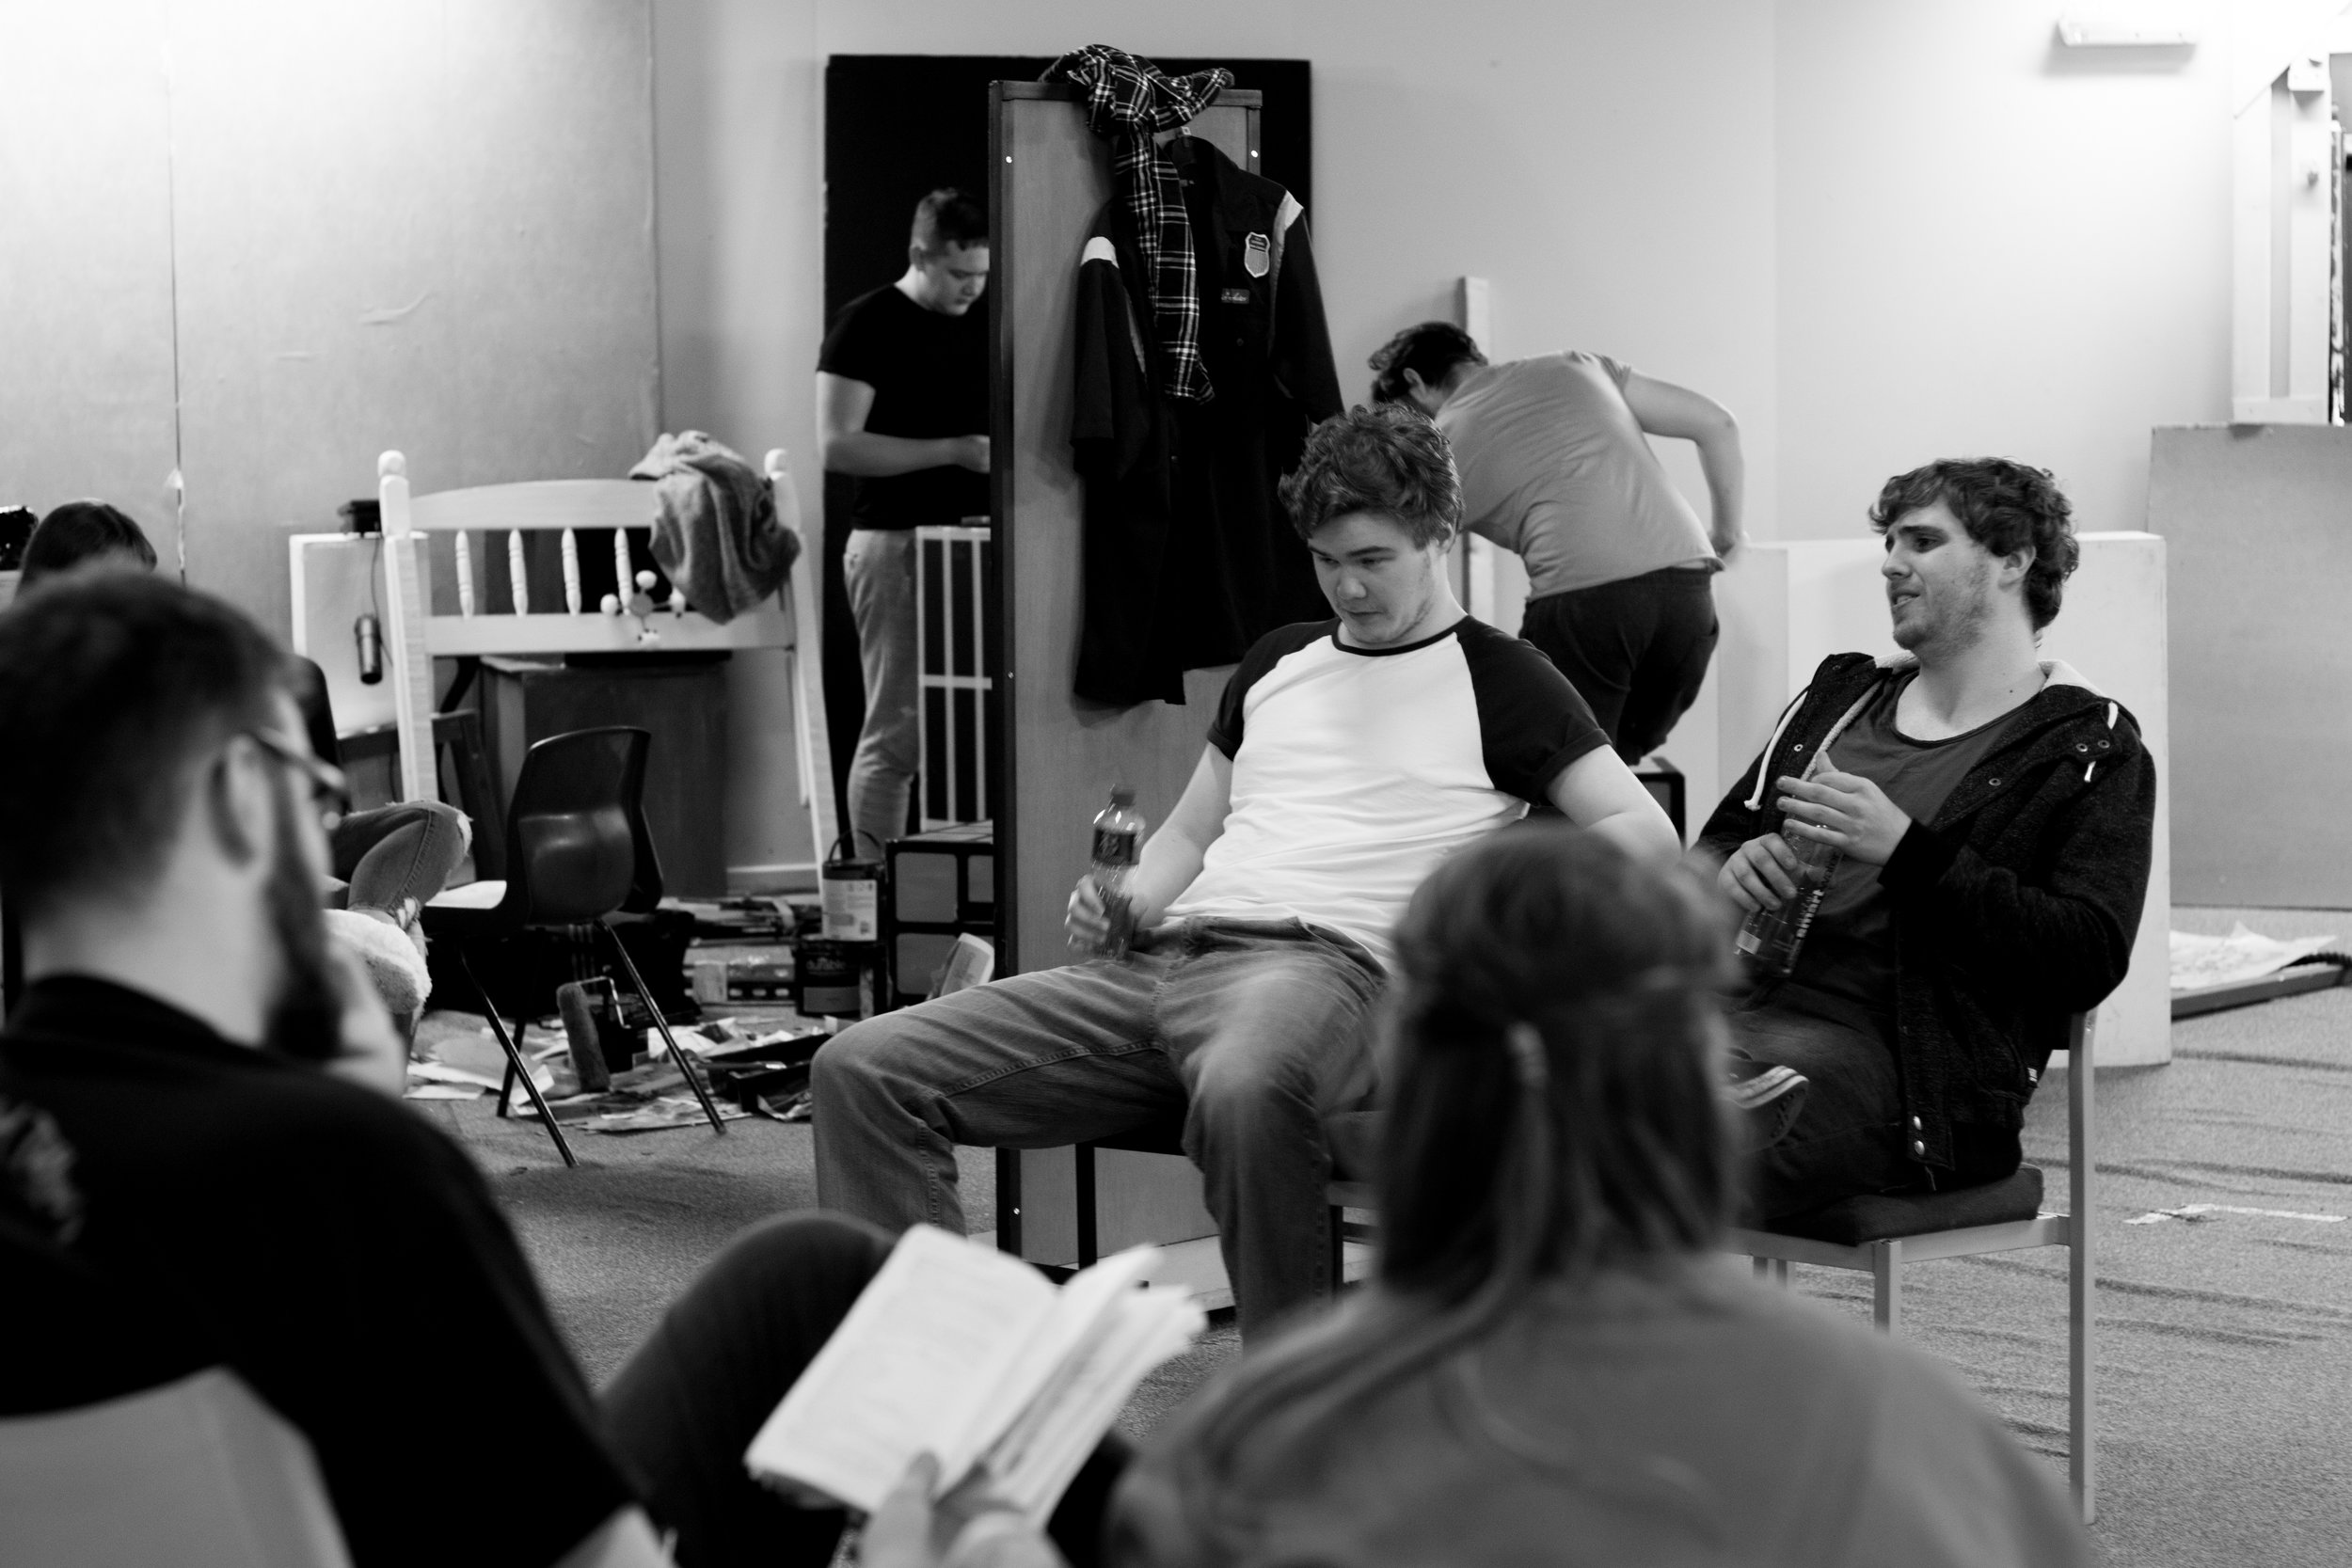 Killer Joe - The rehearsals